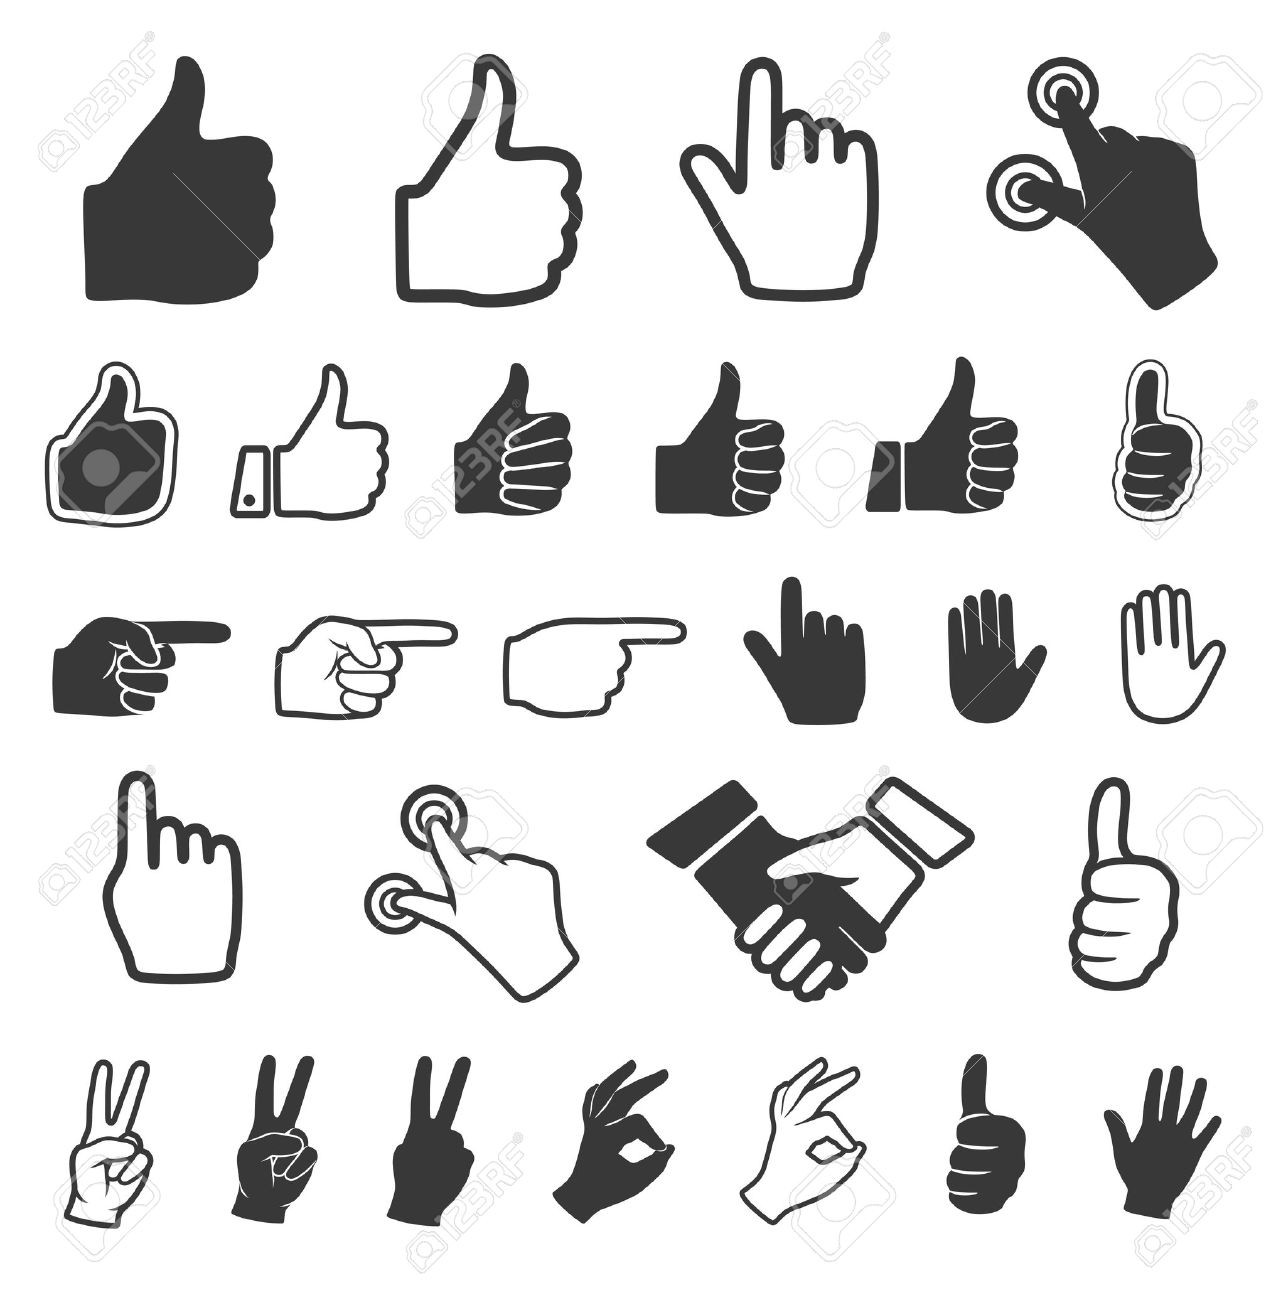 hand icon vector set royalty free cliparts vectors and stock rh 123rf com hand icon vector png hand icon vector eps